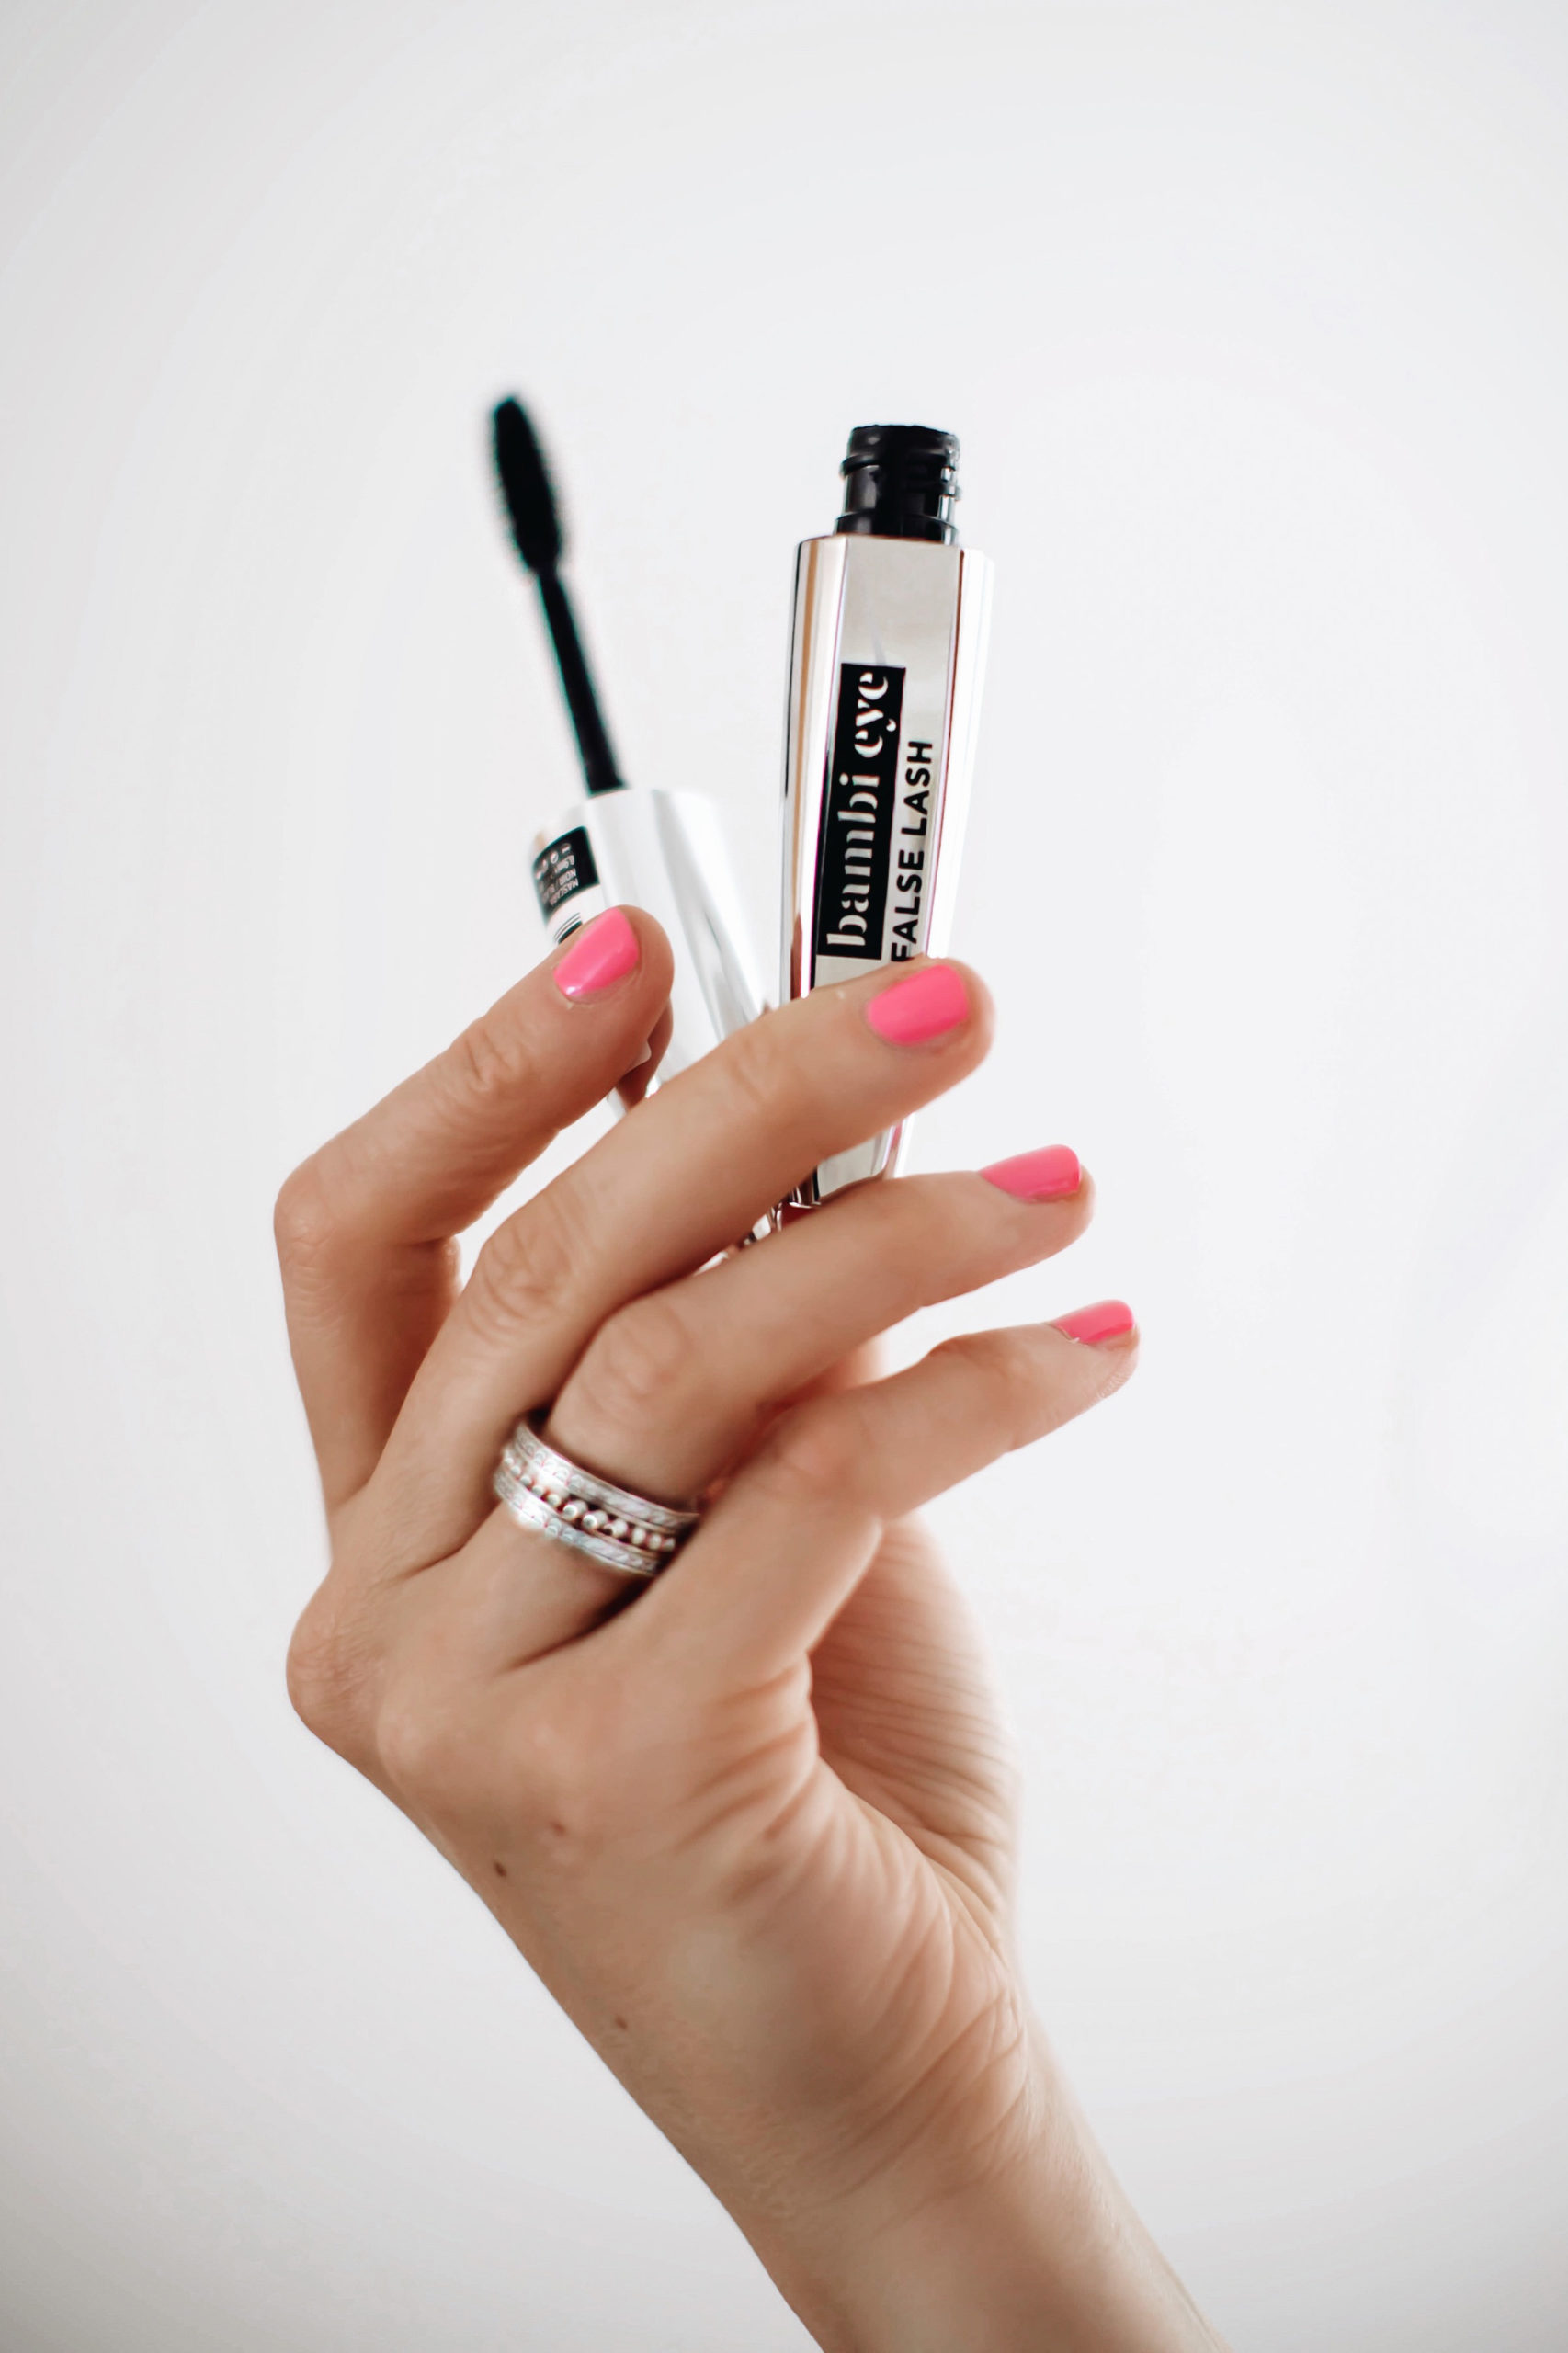 Let's talk about Mascara. Eure 5 Mascara Fragen